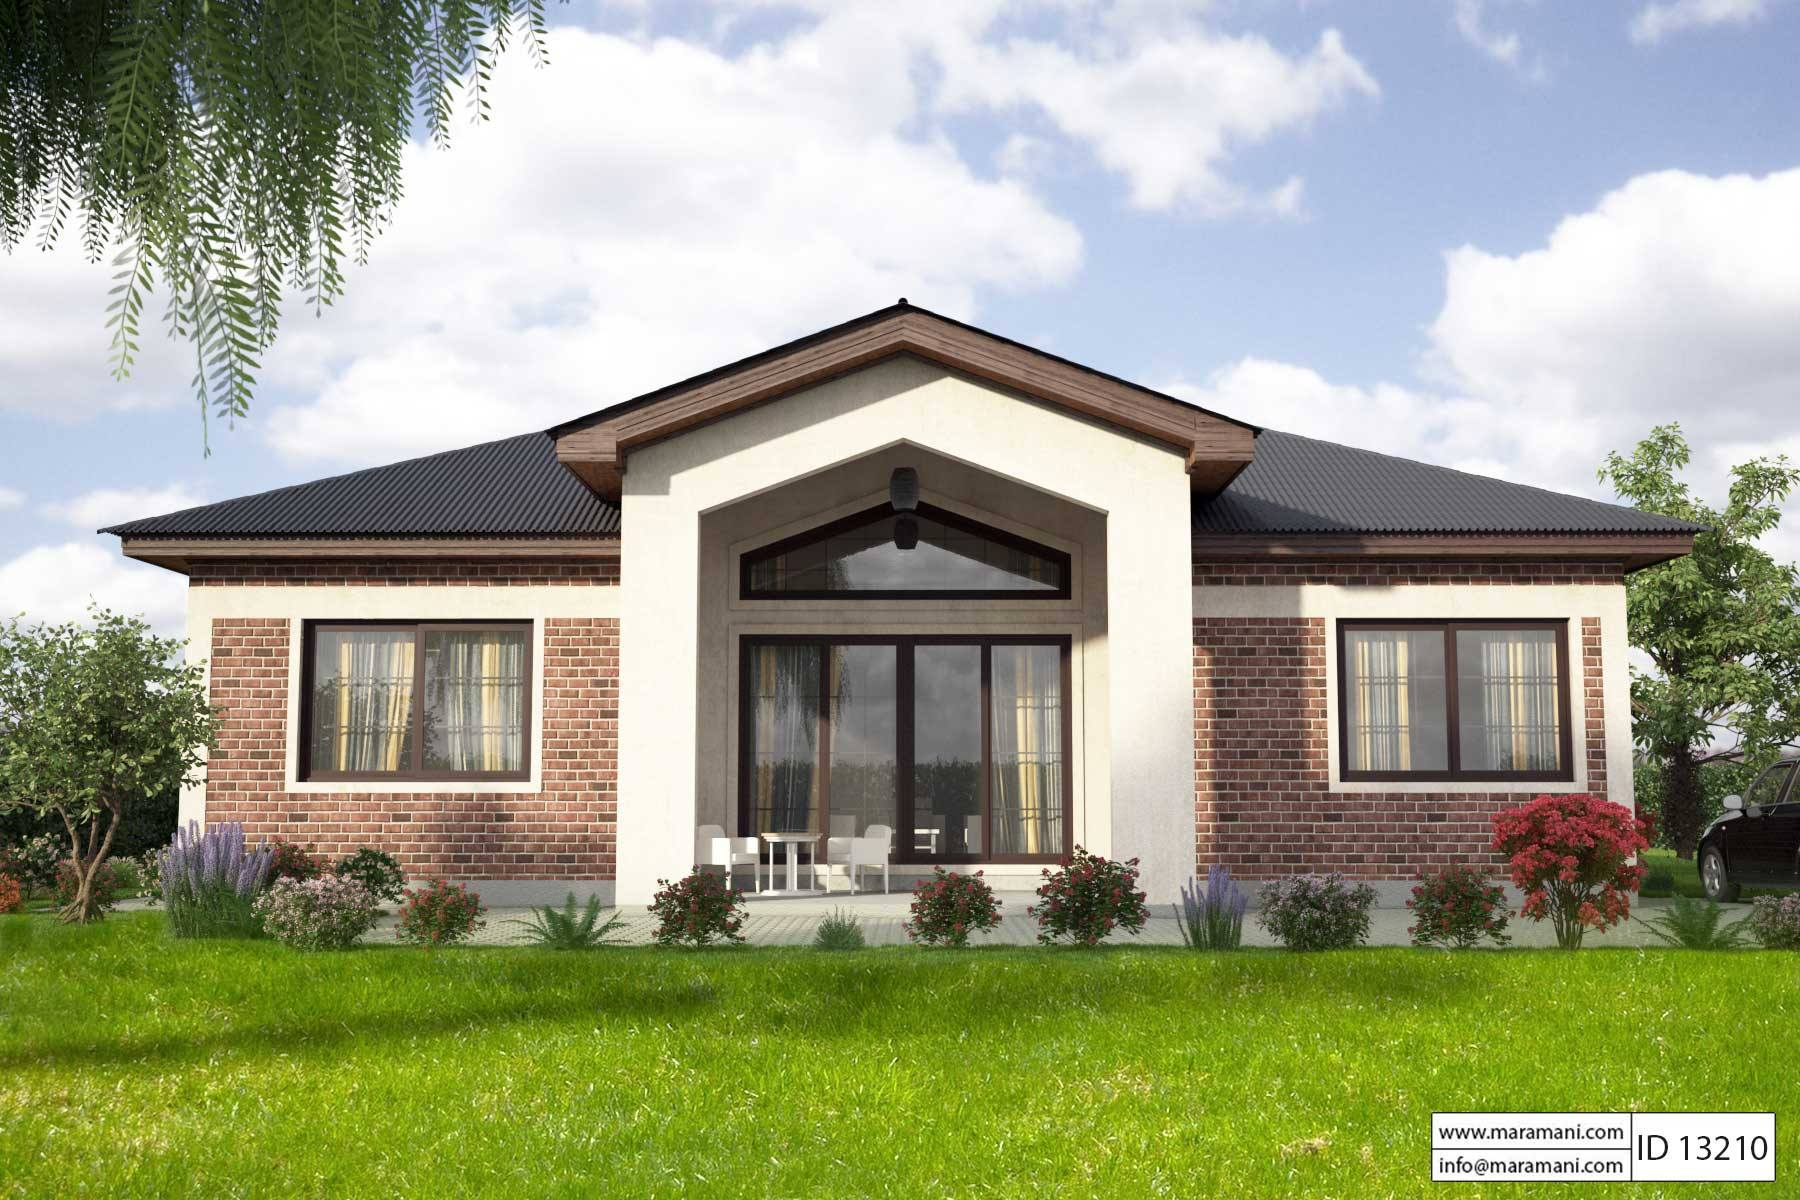 3 bedroom house plan id 13210